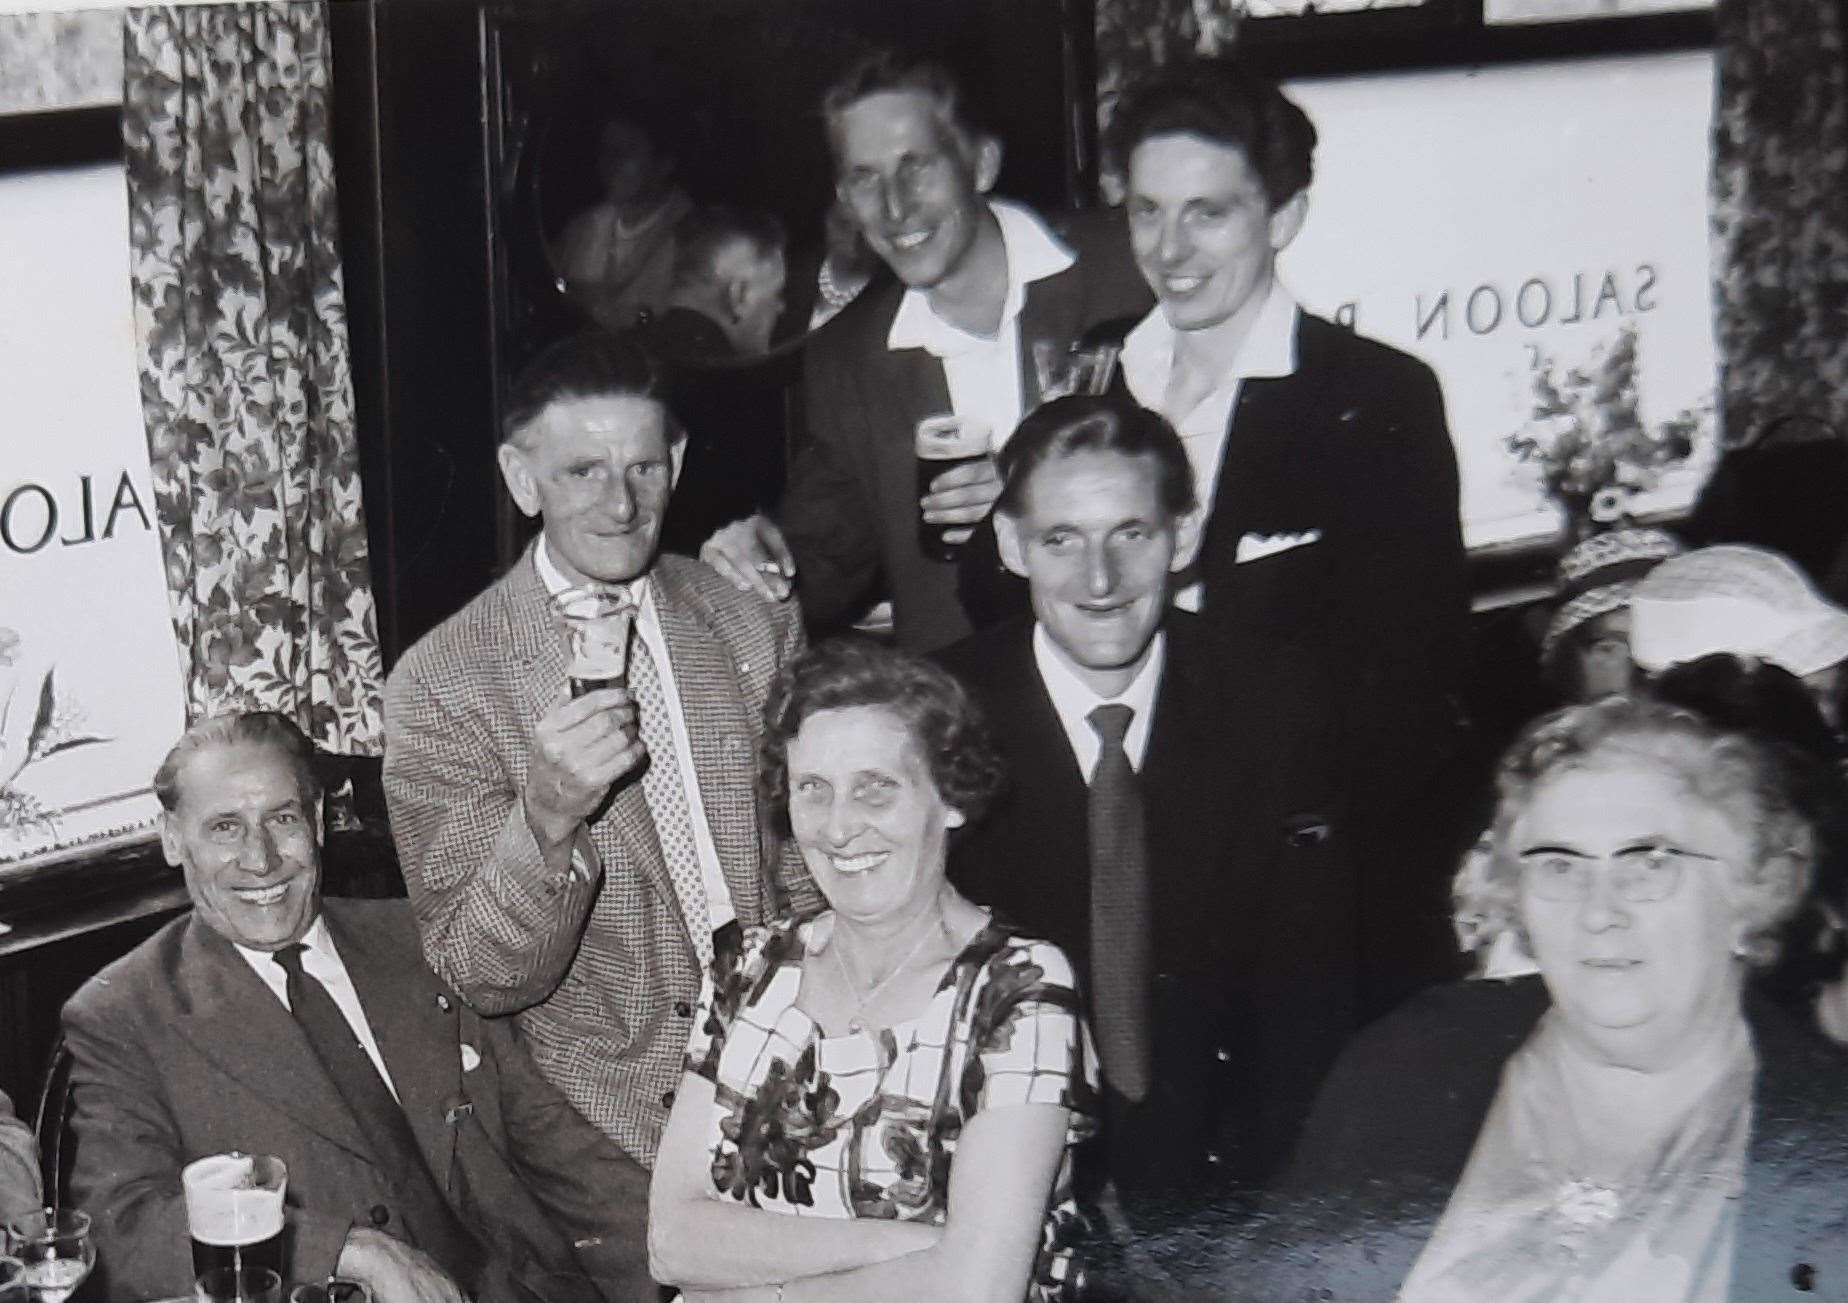 Tony and Bob, pictured at the back, in the Miller's Arms in Canterbury in the 1960s